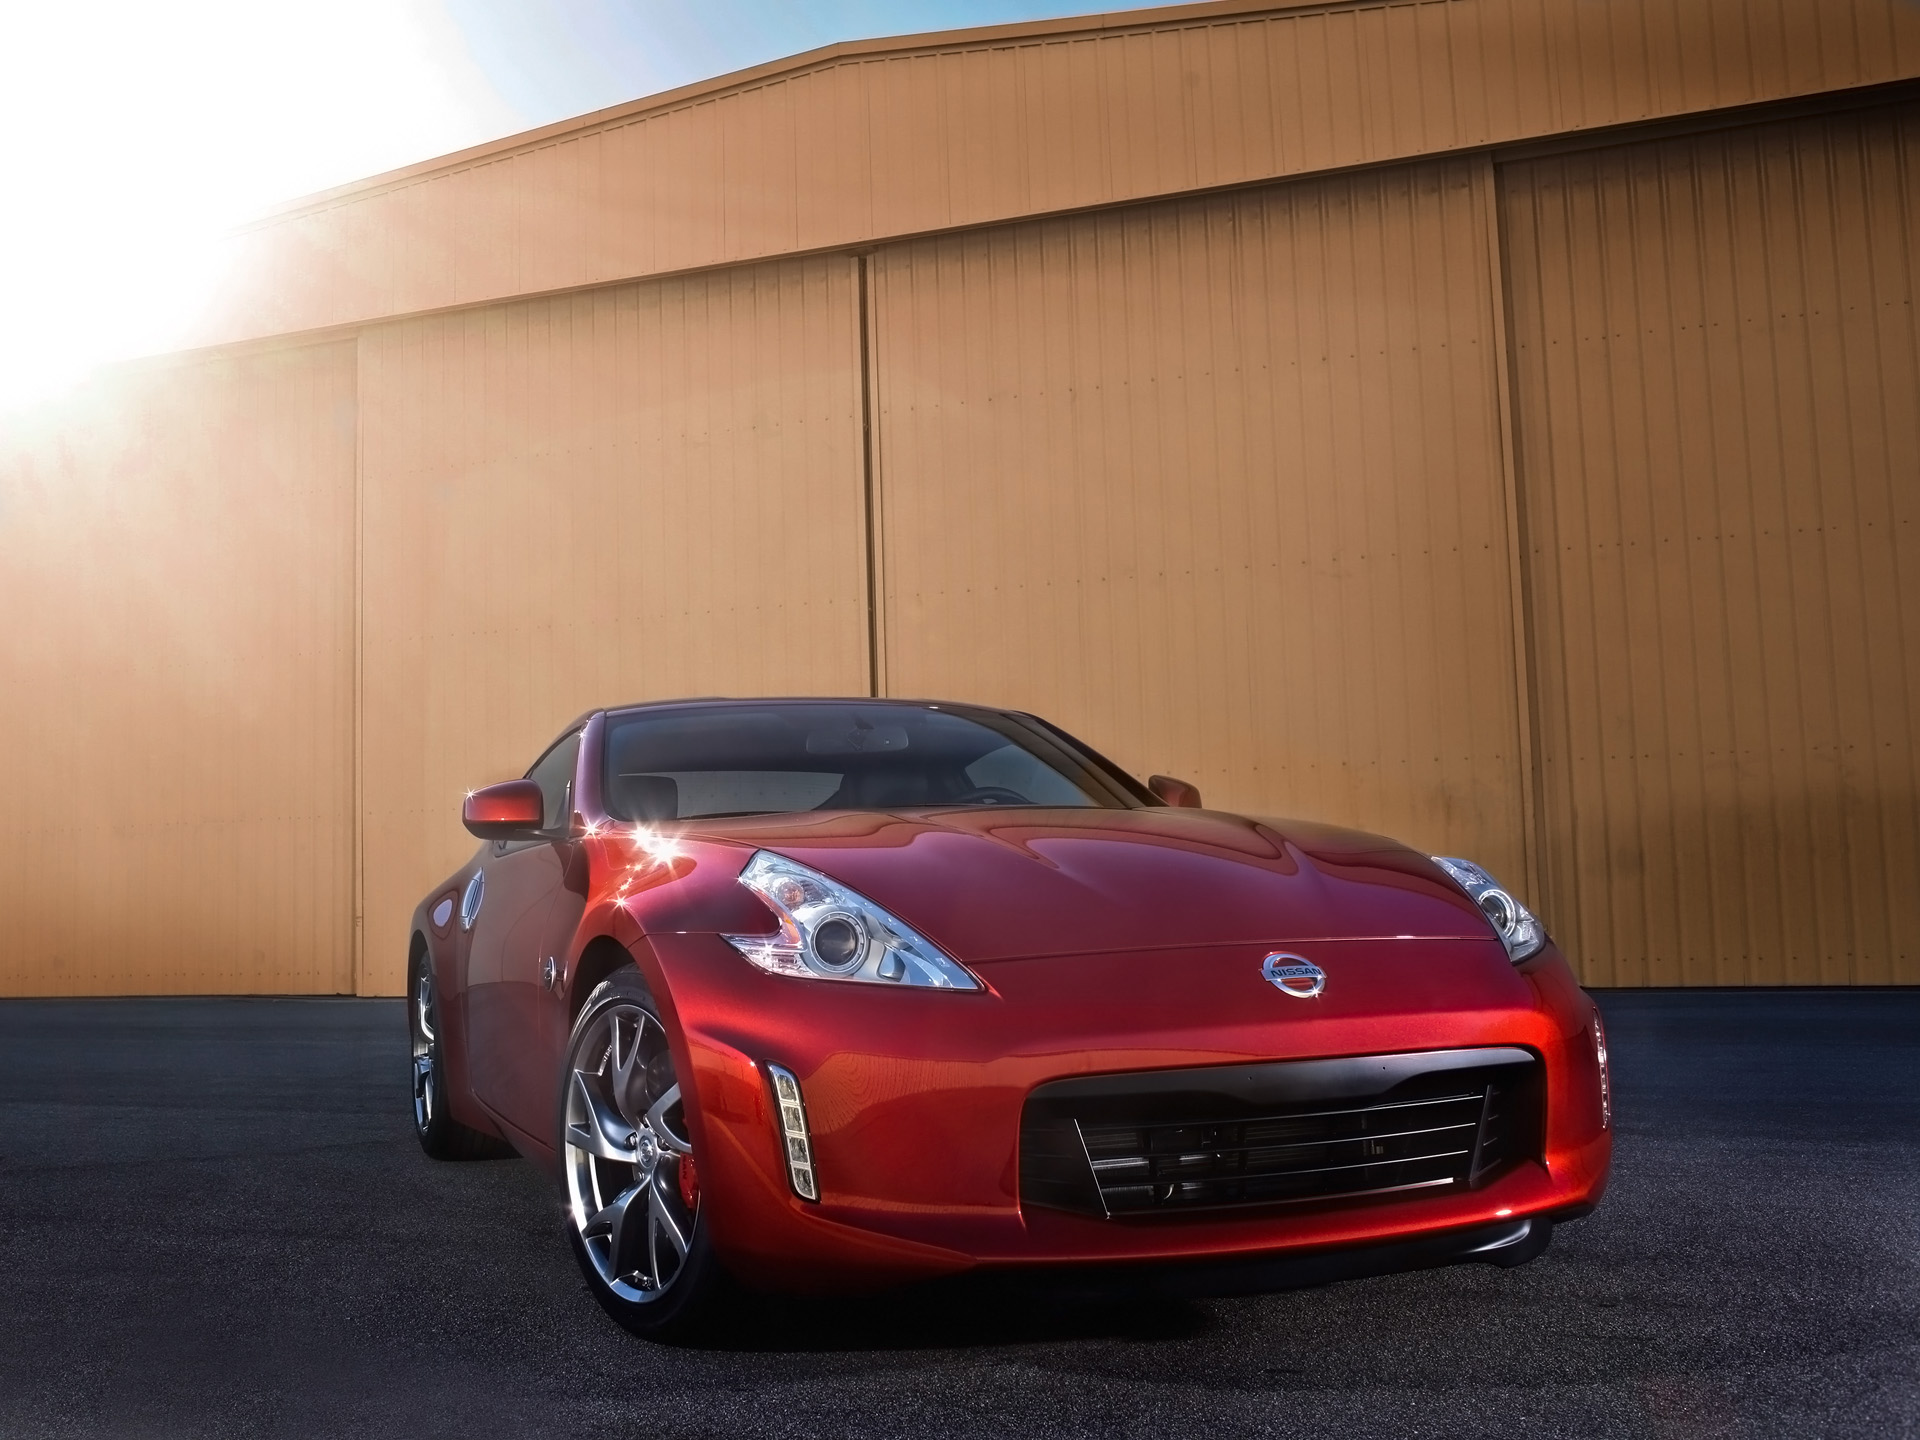 Nissan 370z magma red close up wallpapers nissan 370z magma red nissan 370z magma red close up wallpapers and stock photos vanachro Choice Image